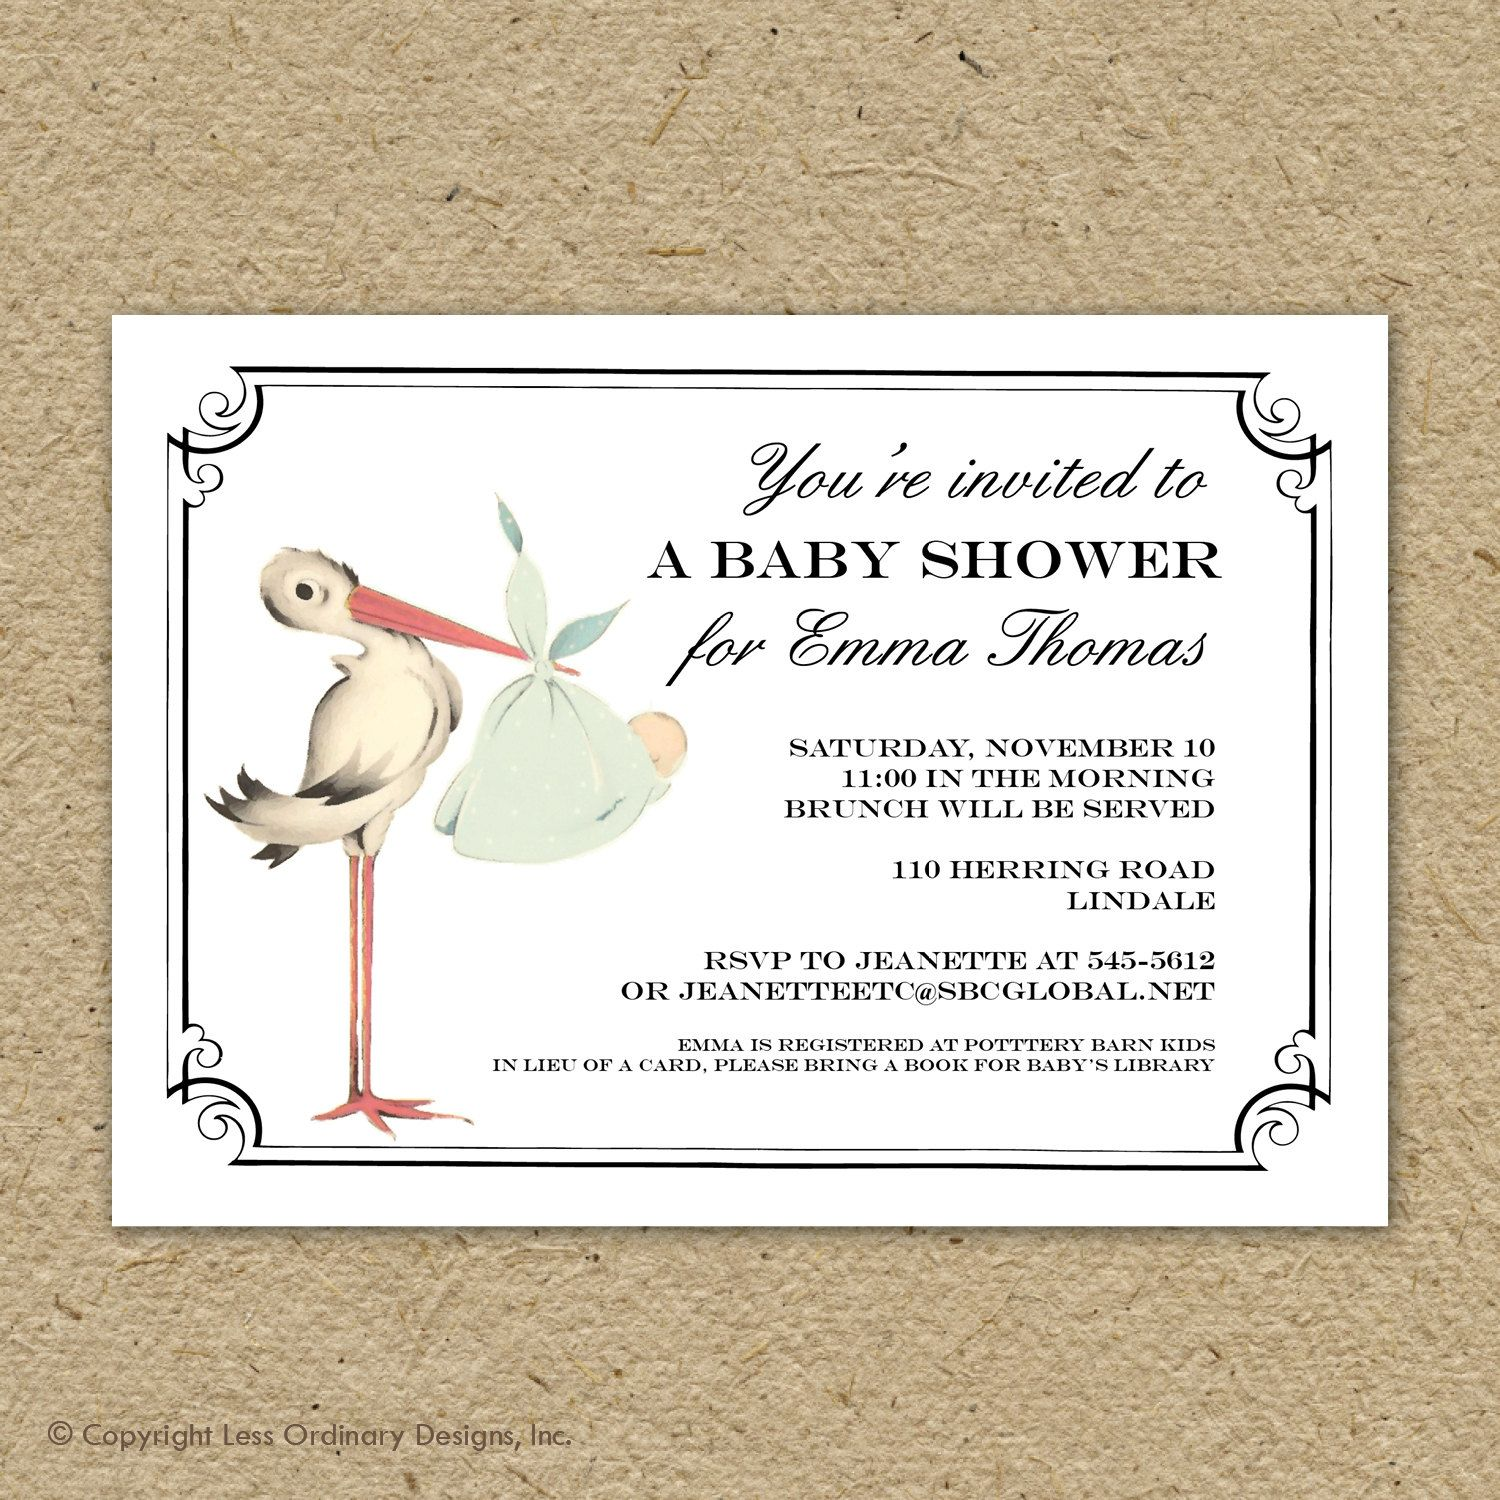 Vintage stork baby shower invitation baby girl stork shower baby vintage stork baby shower invitation baby boy by saralukecreative 1500 filmwisefo